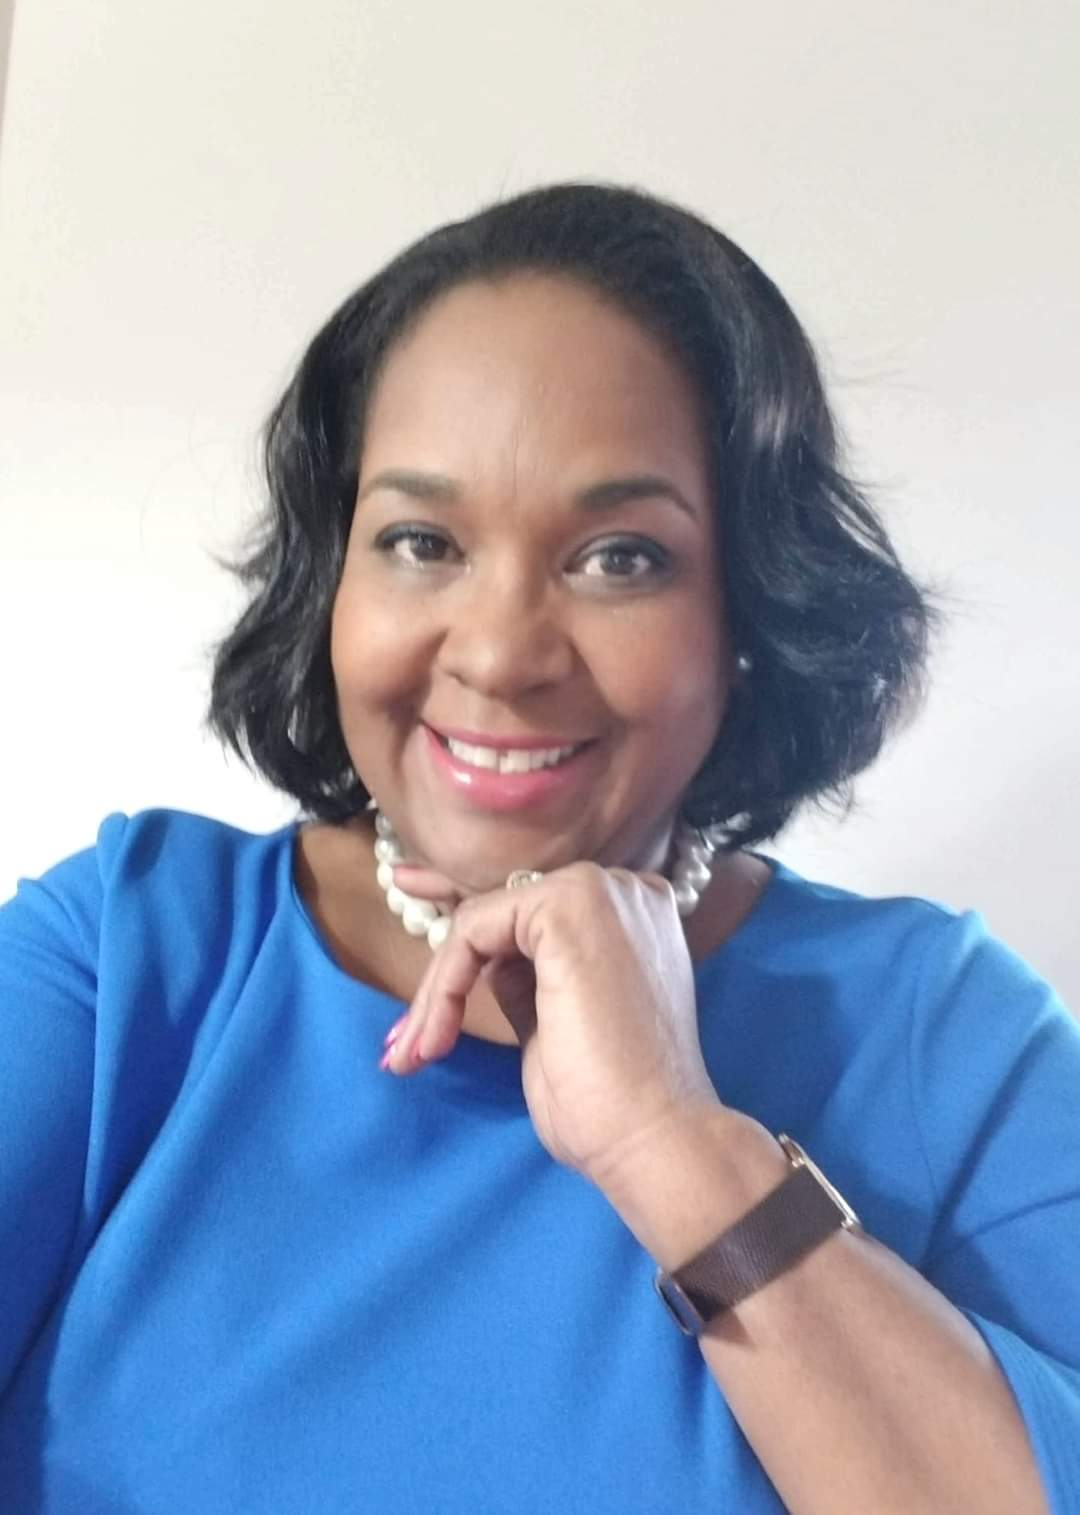 SHELLY CROSSE Financial Professional & Insurance Agent